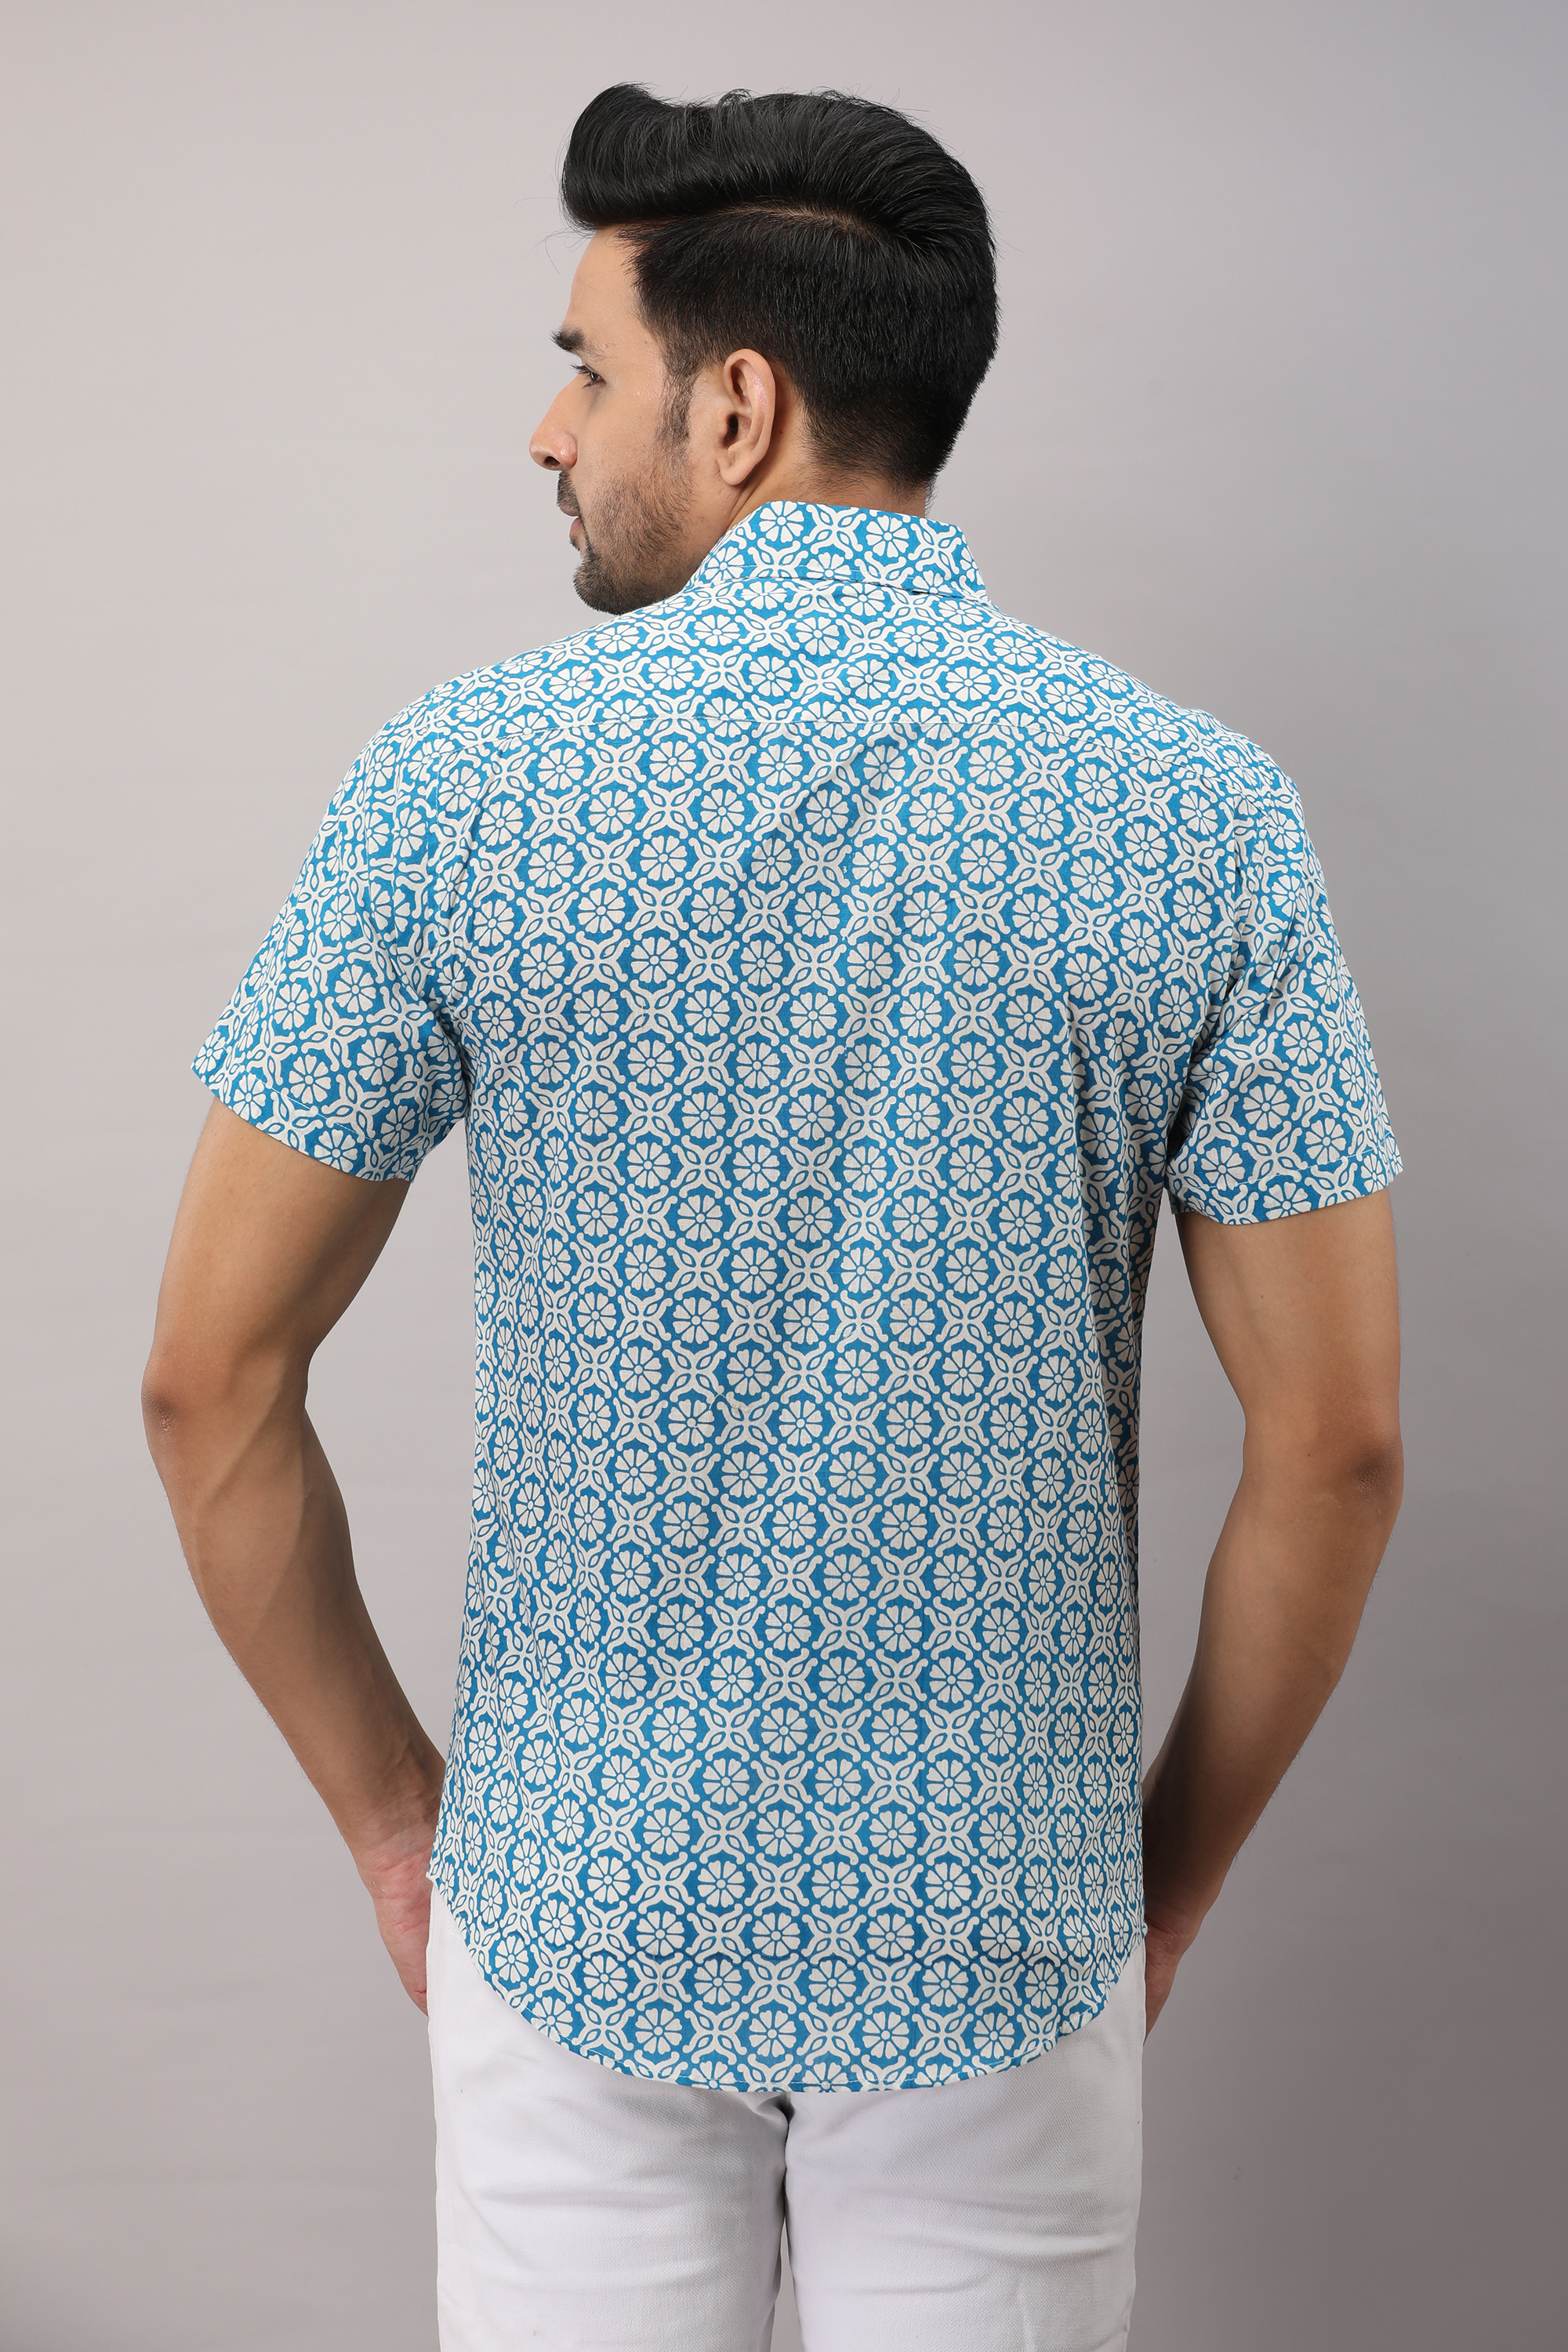 FrionKandy Cotton Printed Casual Light Blue Regular Shirt For Men - XL